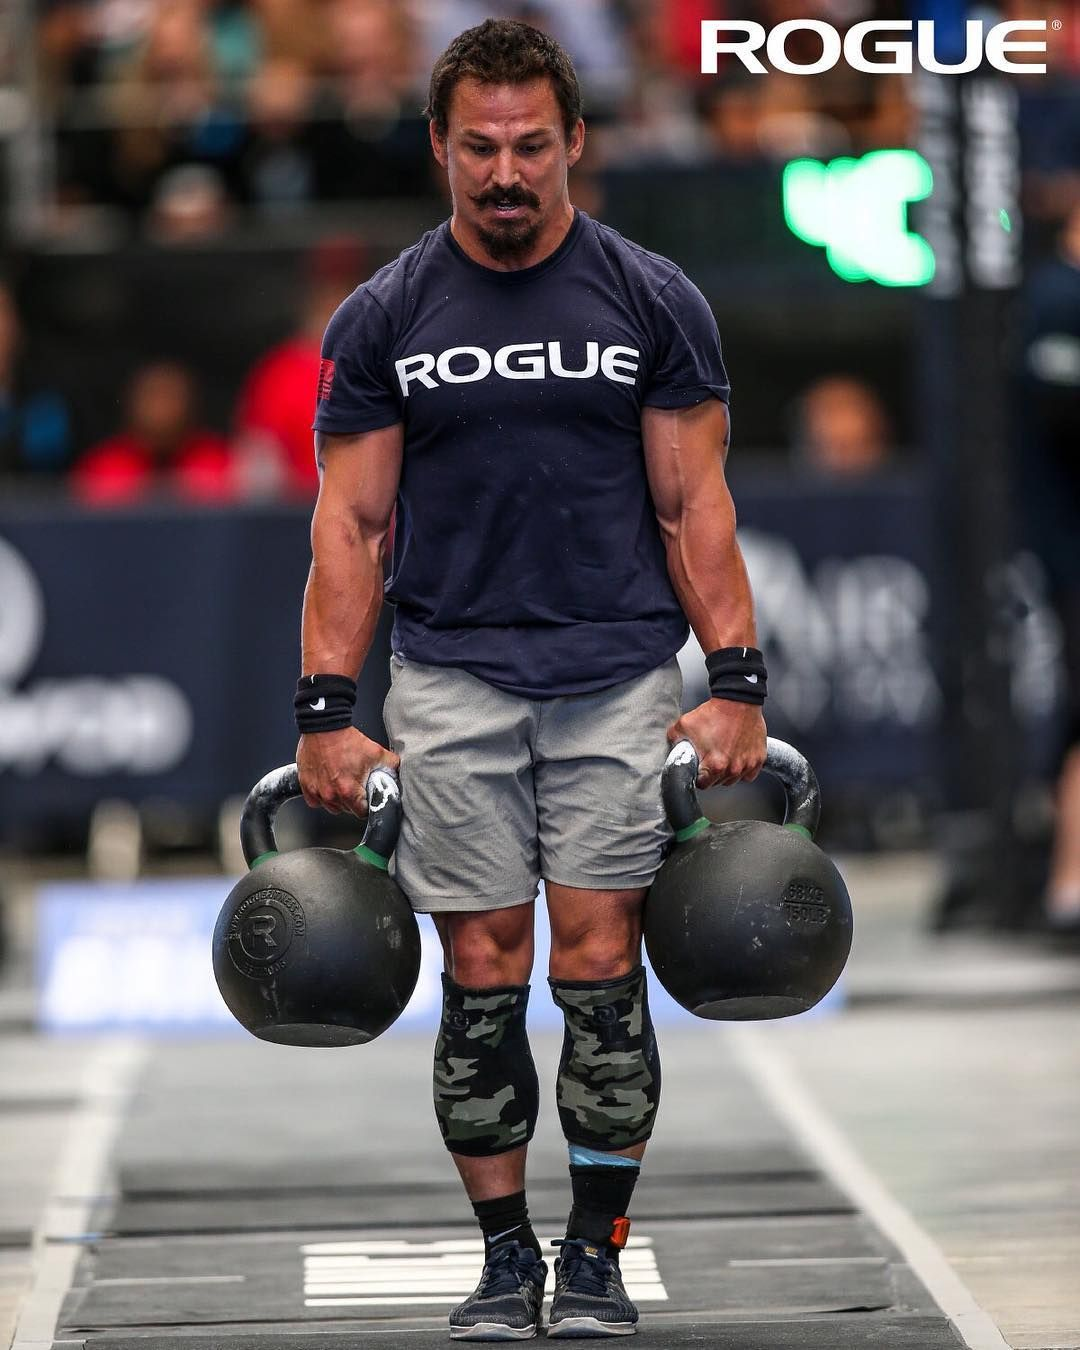 """Kettlebell Training For Athletes: Rogue Fitness """"When The 88 Lb. Bells Don't Cut It. Rogue"""